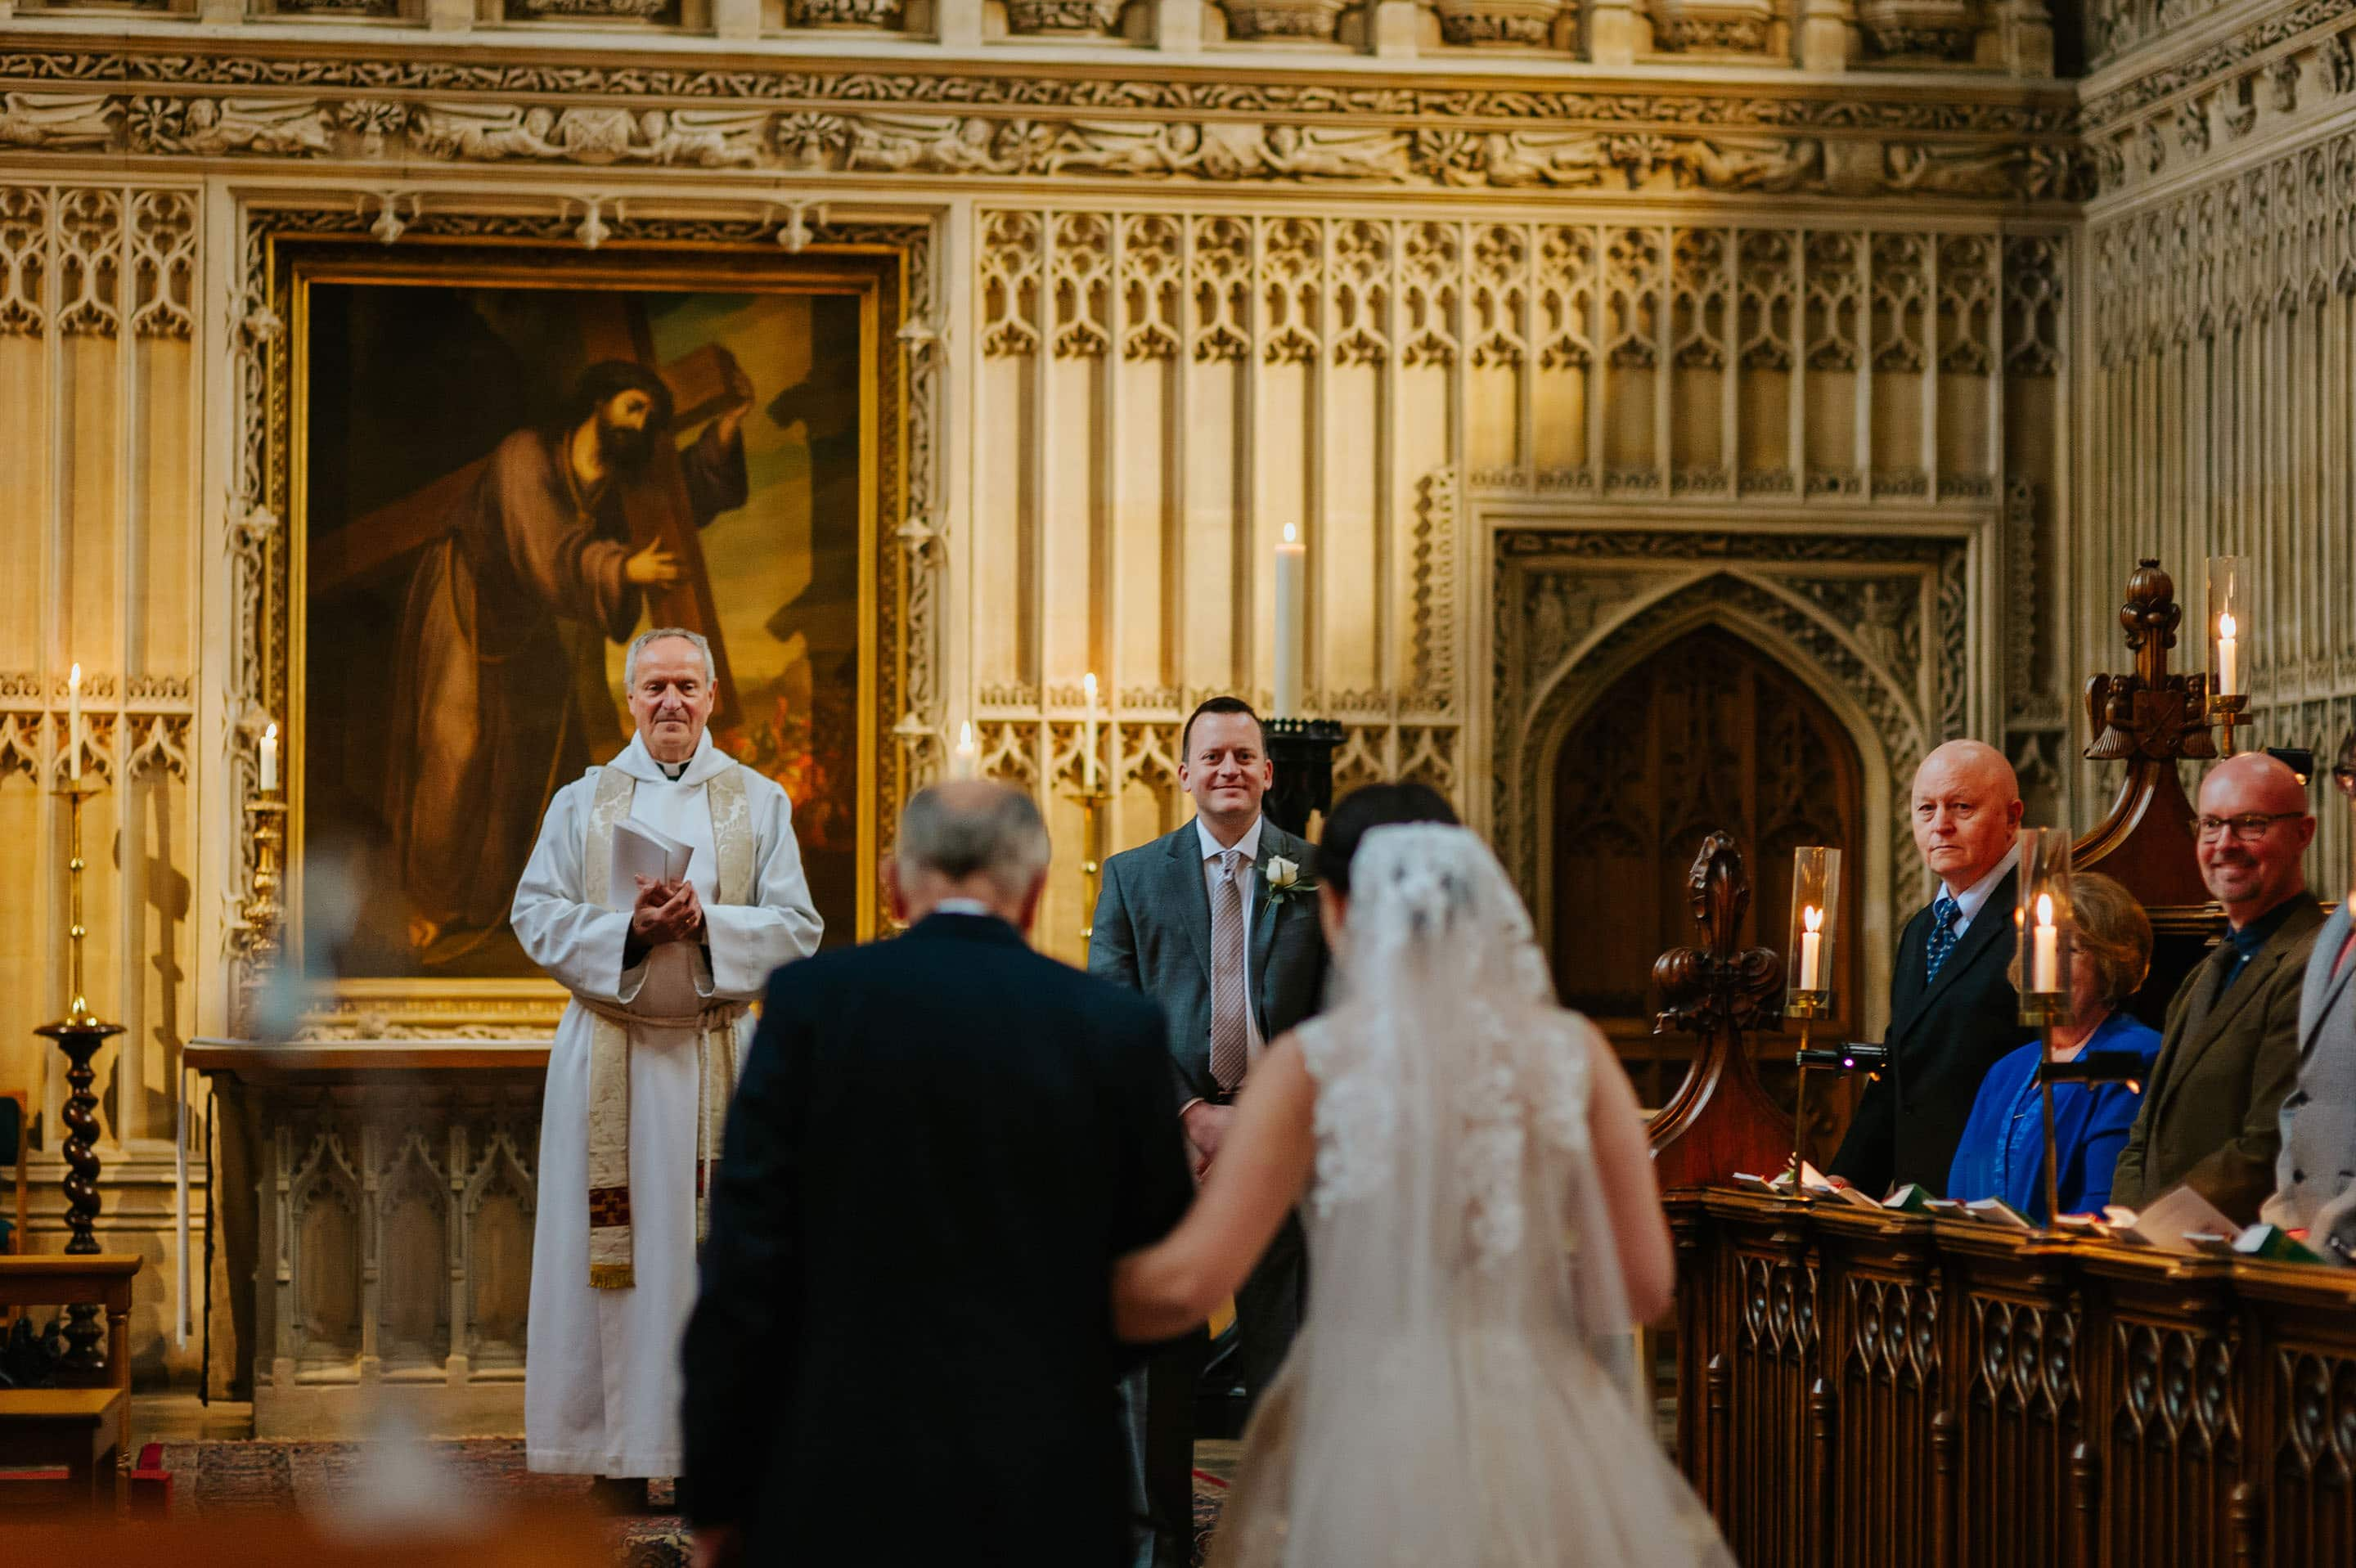 Tommie + Virginia | Wedding at Magdalen College in Oxford 8